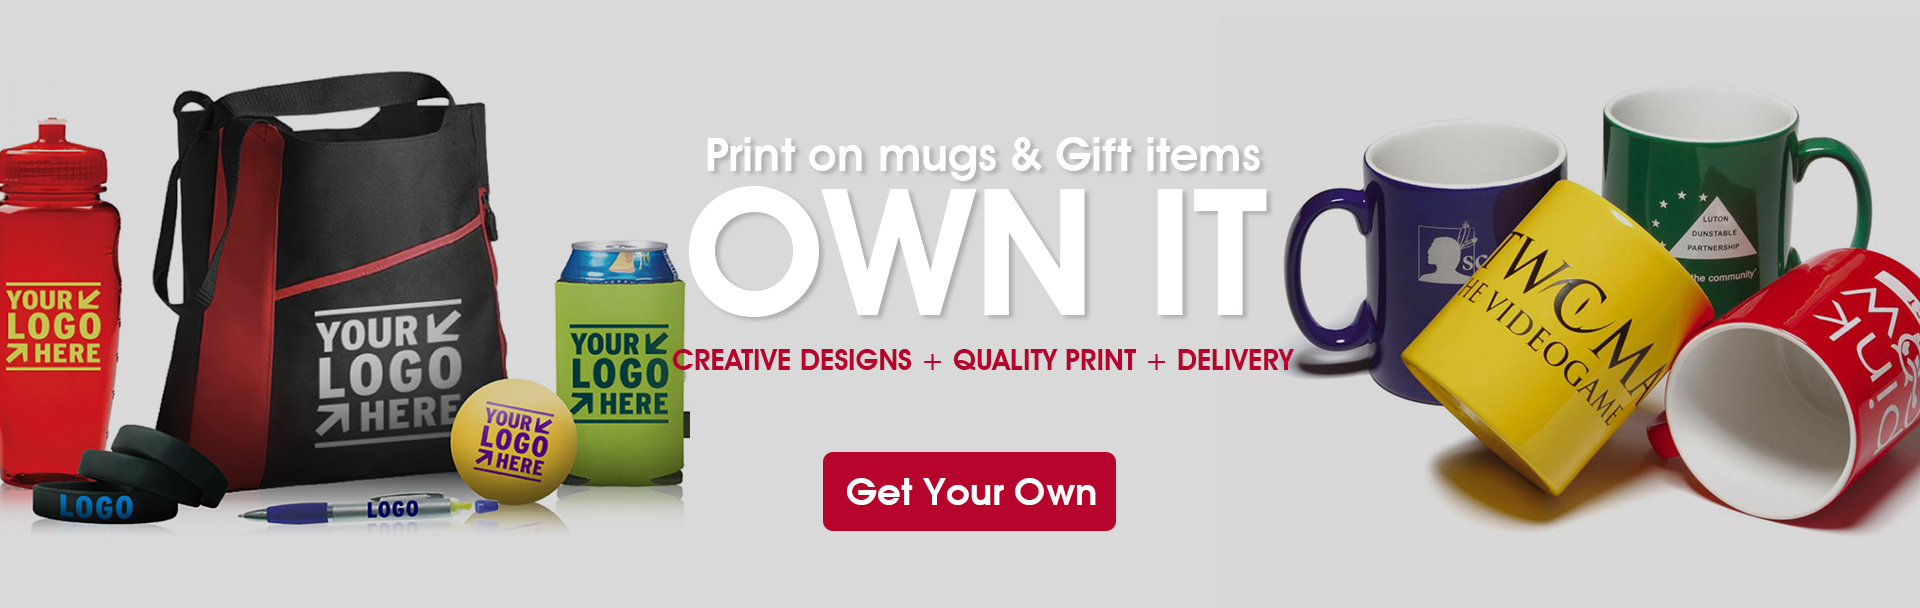 Corporate Gifts Printing in noida sector 31